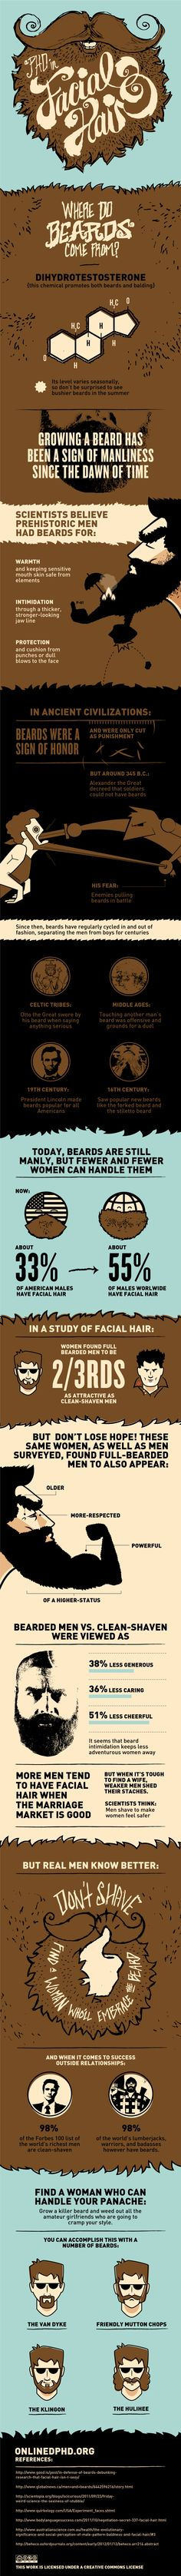 98% of the world's richest men are clean-shaven.  98% of the world's lumberjacks, warriors, and badasses have beards.    nuf said.